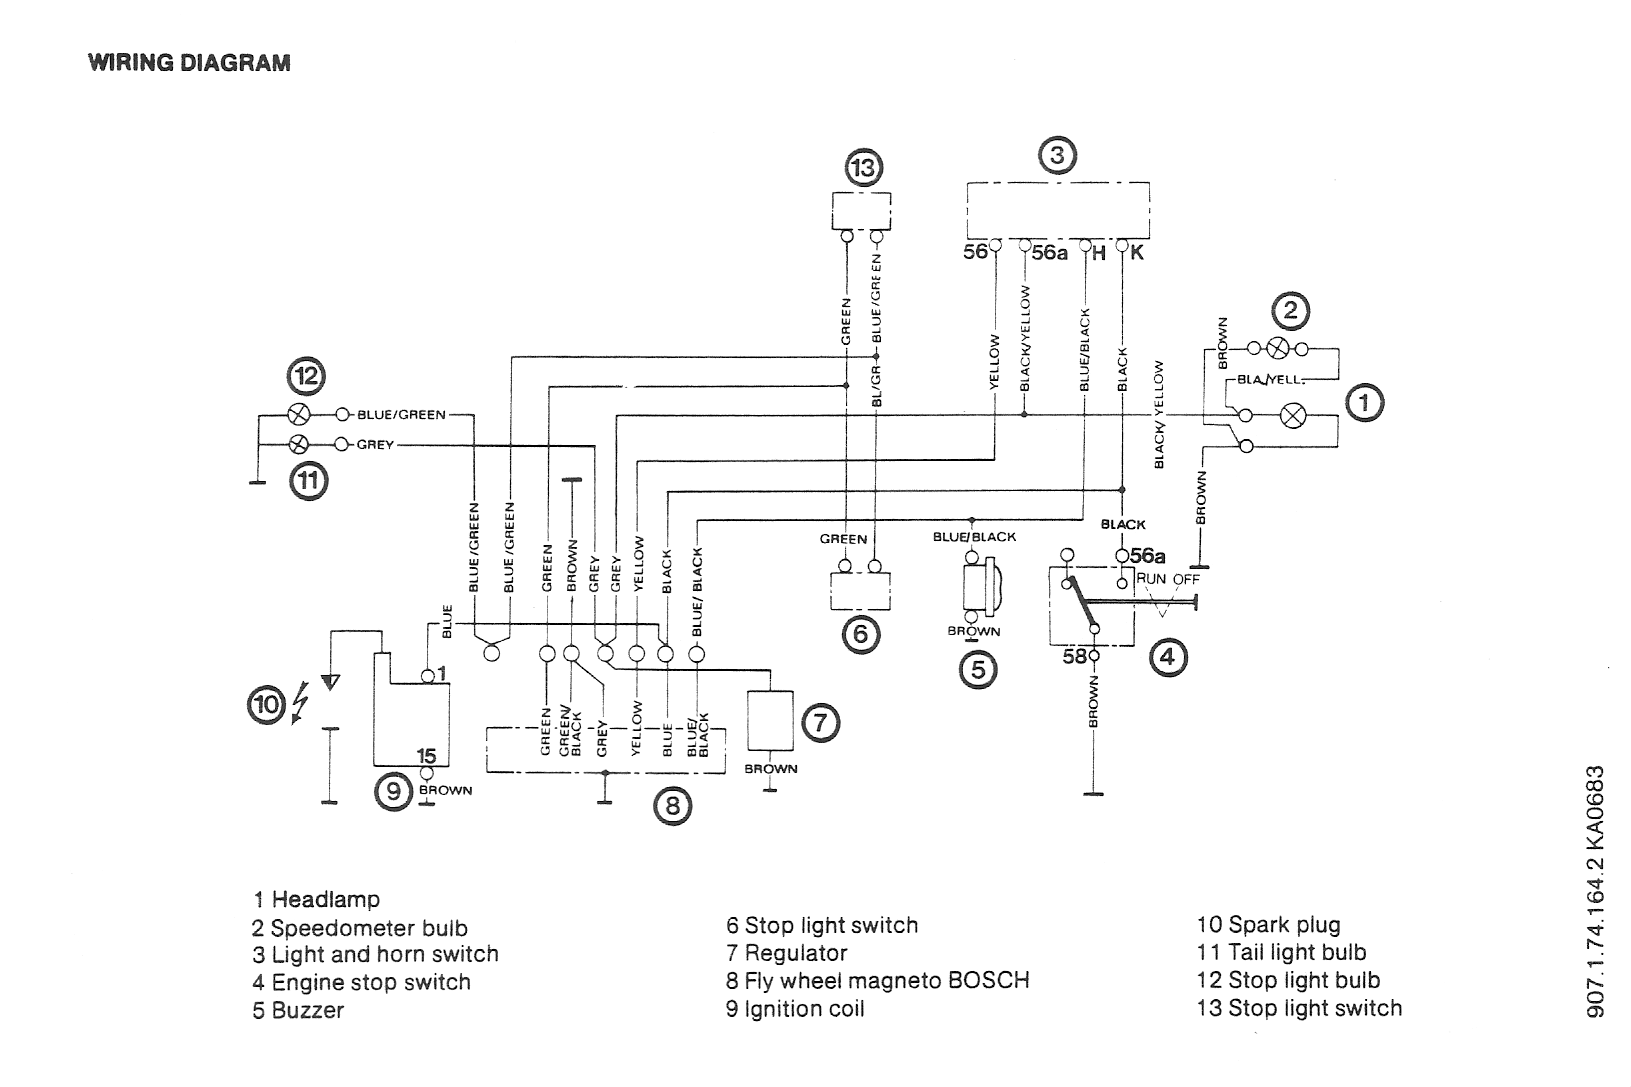 Puch_Mini_Maxi_wiring_diagram puch wiring diagrams moped wiki 1977 puch maxi wiring diagram at arjmand.co